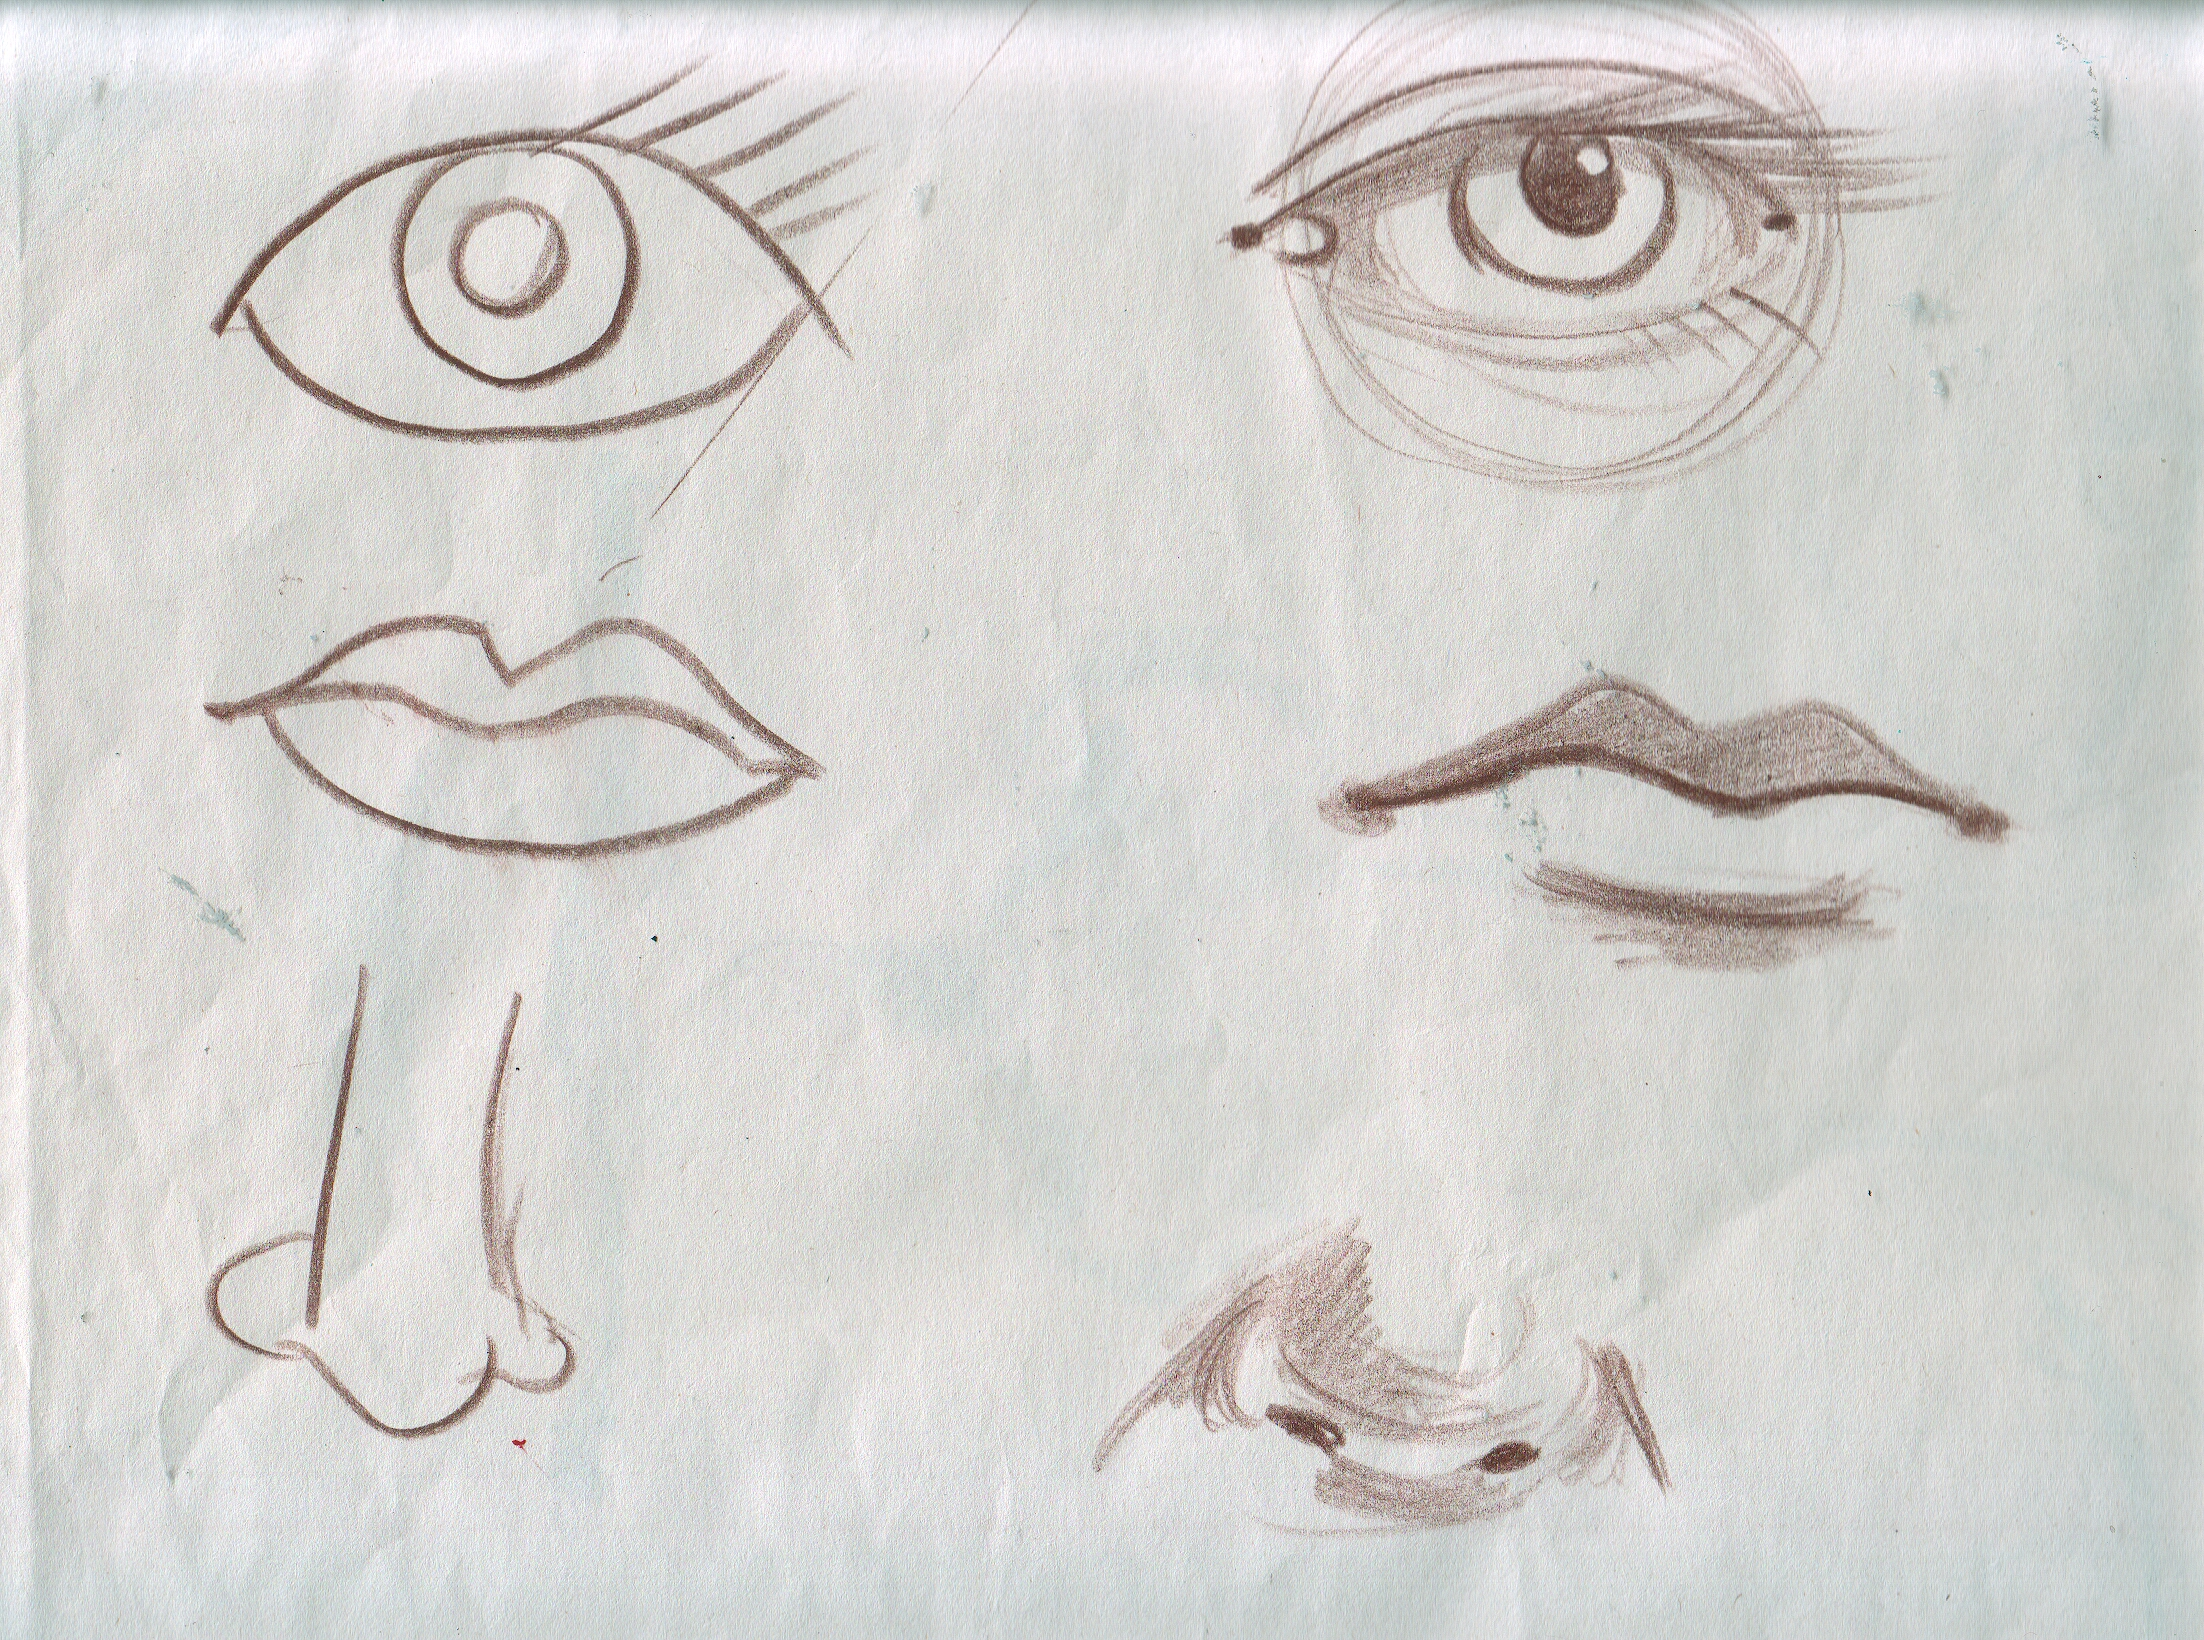 ... tutorial PART 4 of 8: EYES NOSE MOUTH using shadow not outline